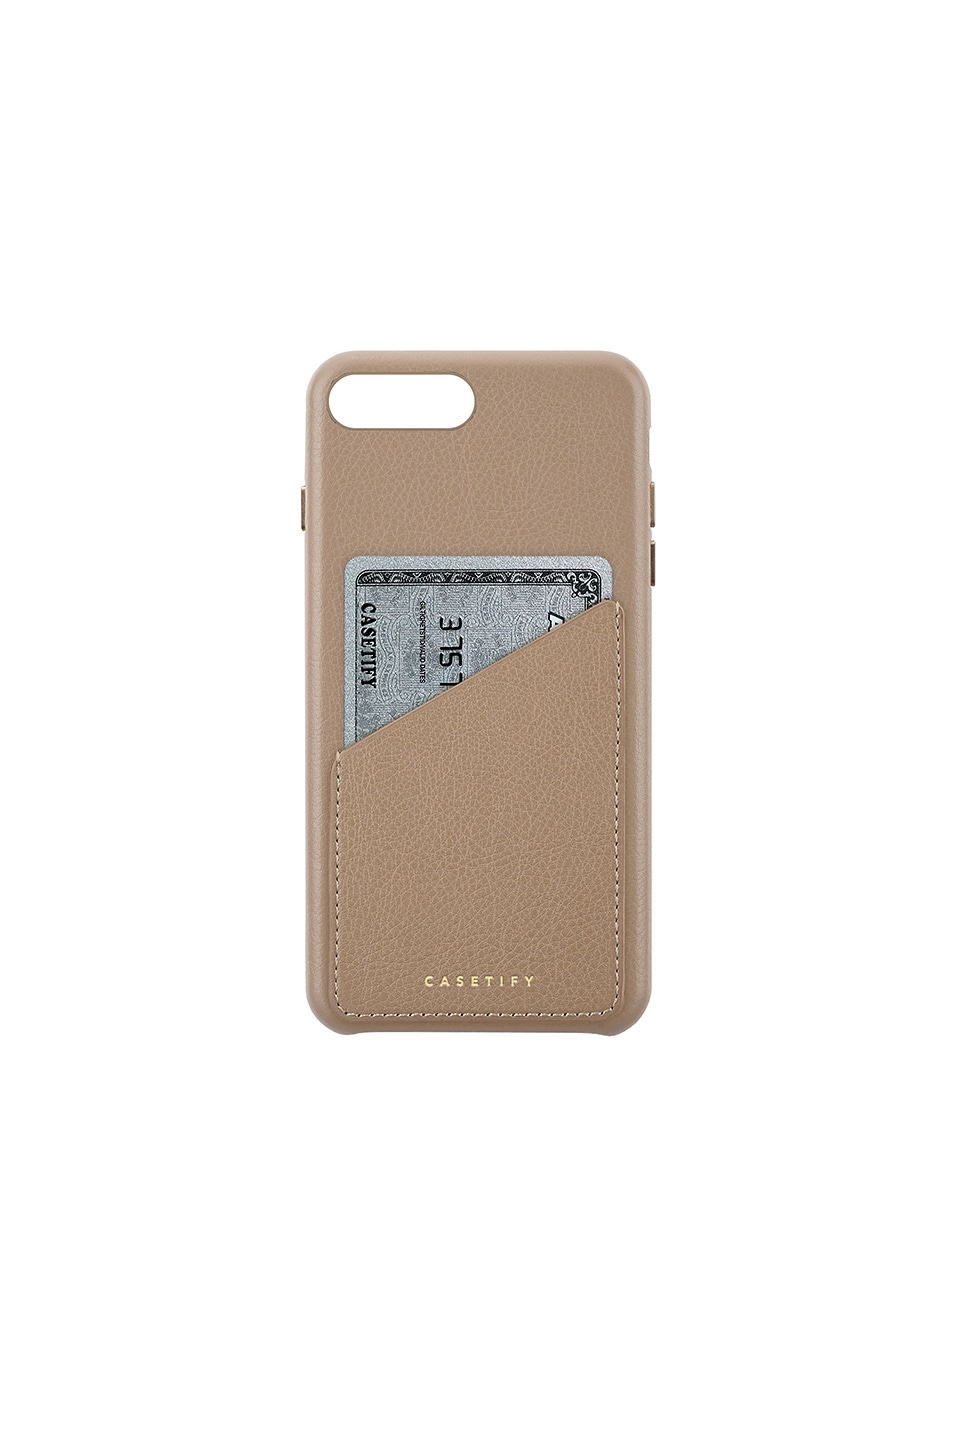 LEATHER CARD IPHONE 6/7/8 PLUS CASE